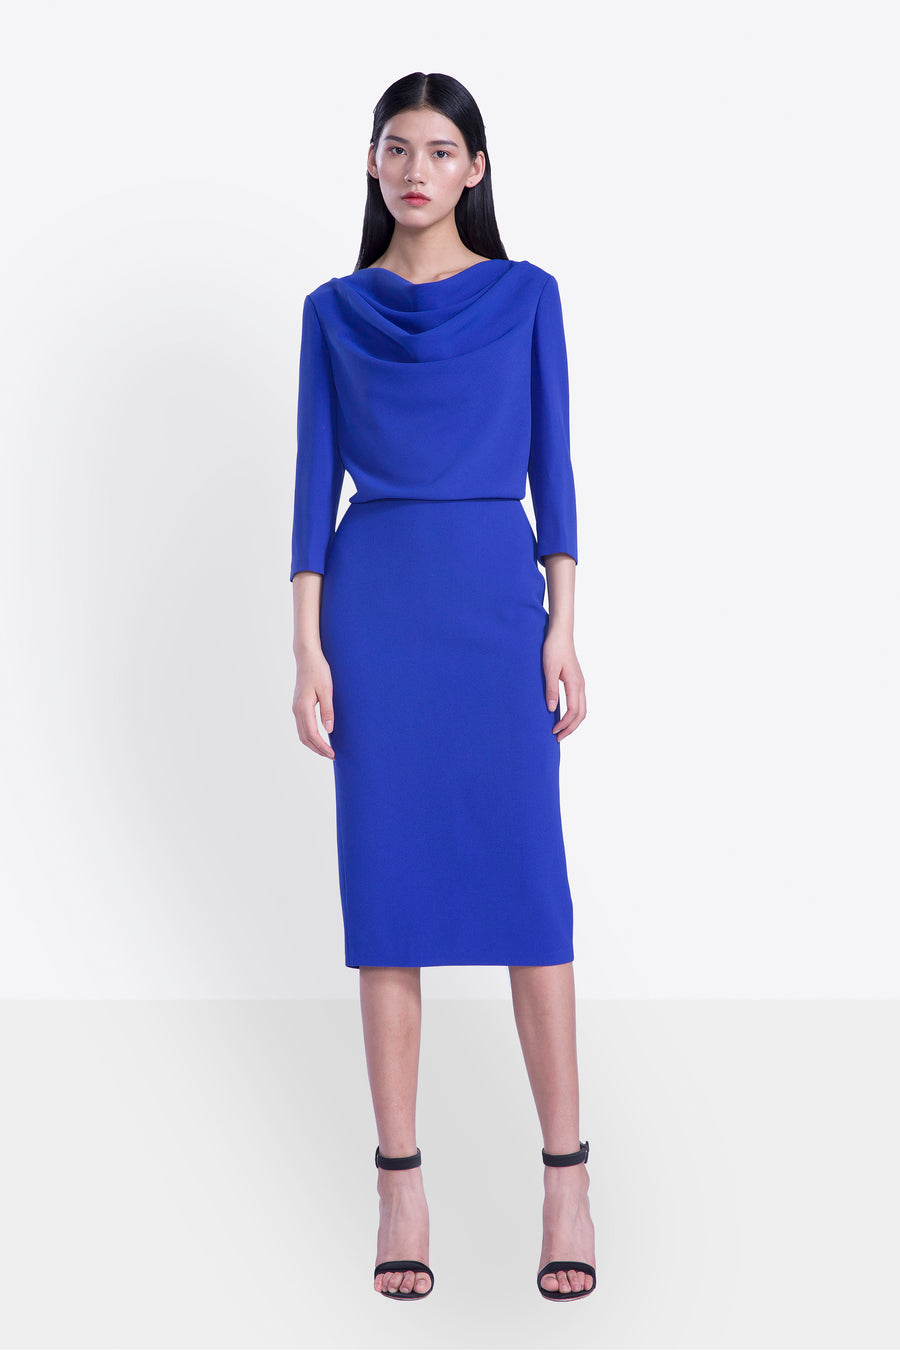 Blue Cowl Neck Pencil Dress